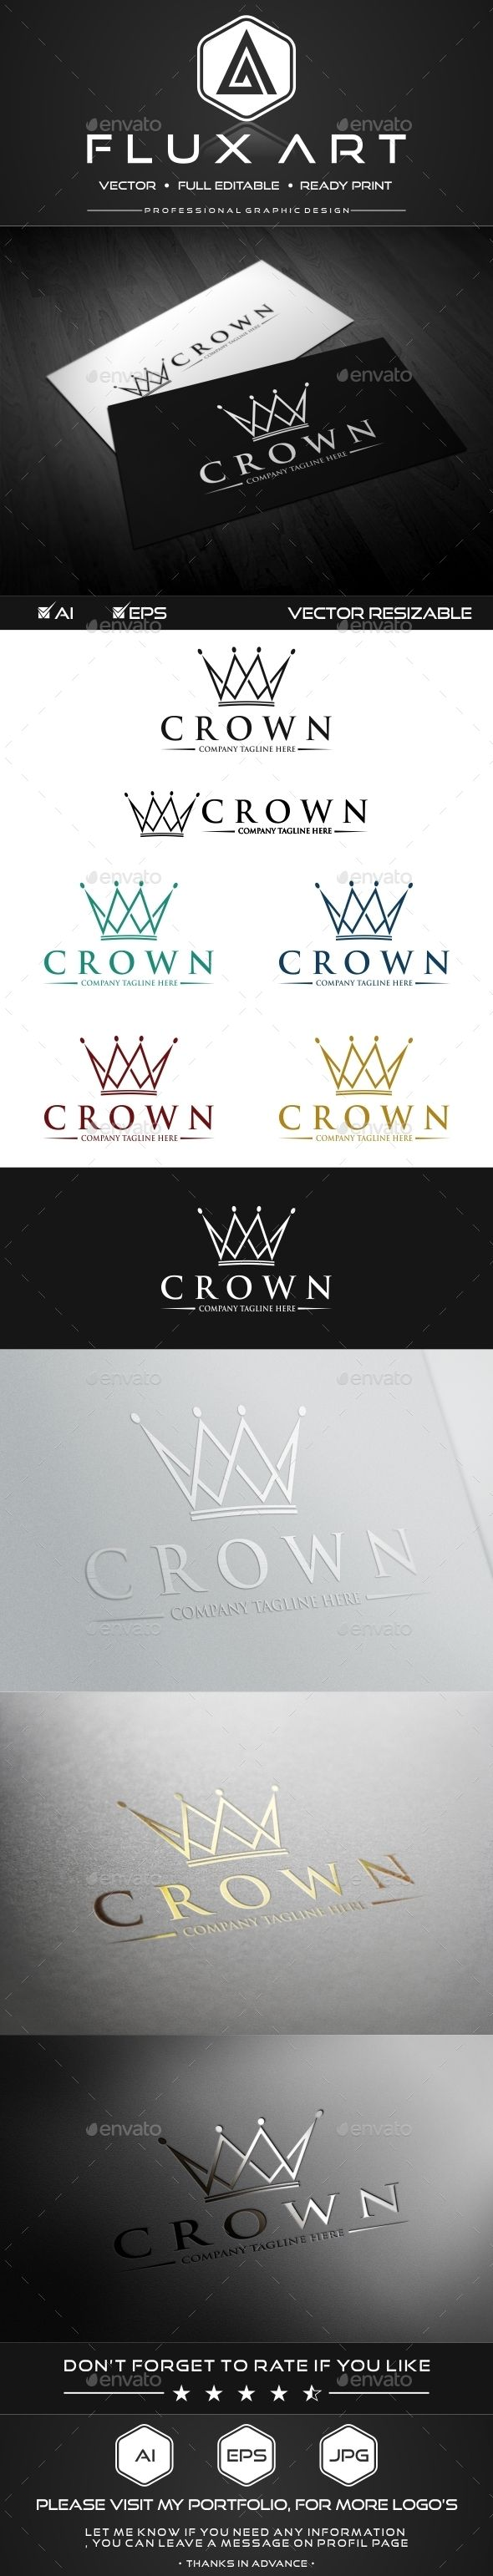 26 best THE QUEENS WAY LOGO images on Pinterest | Logo inspiration ...